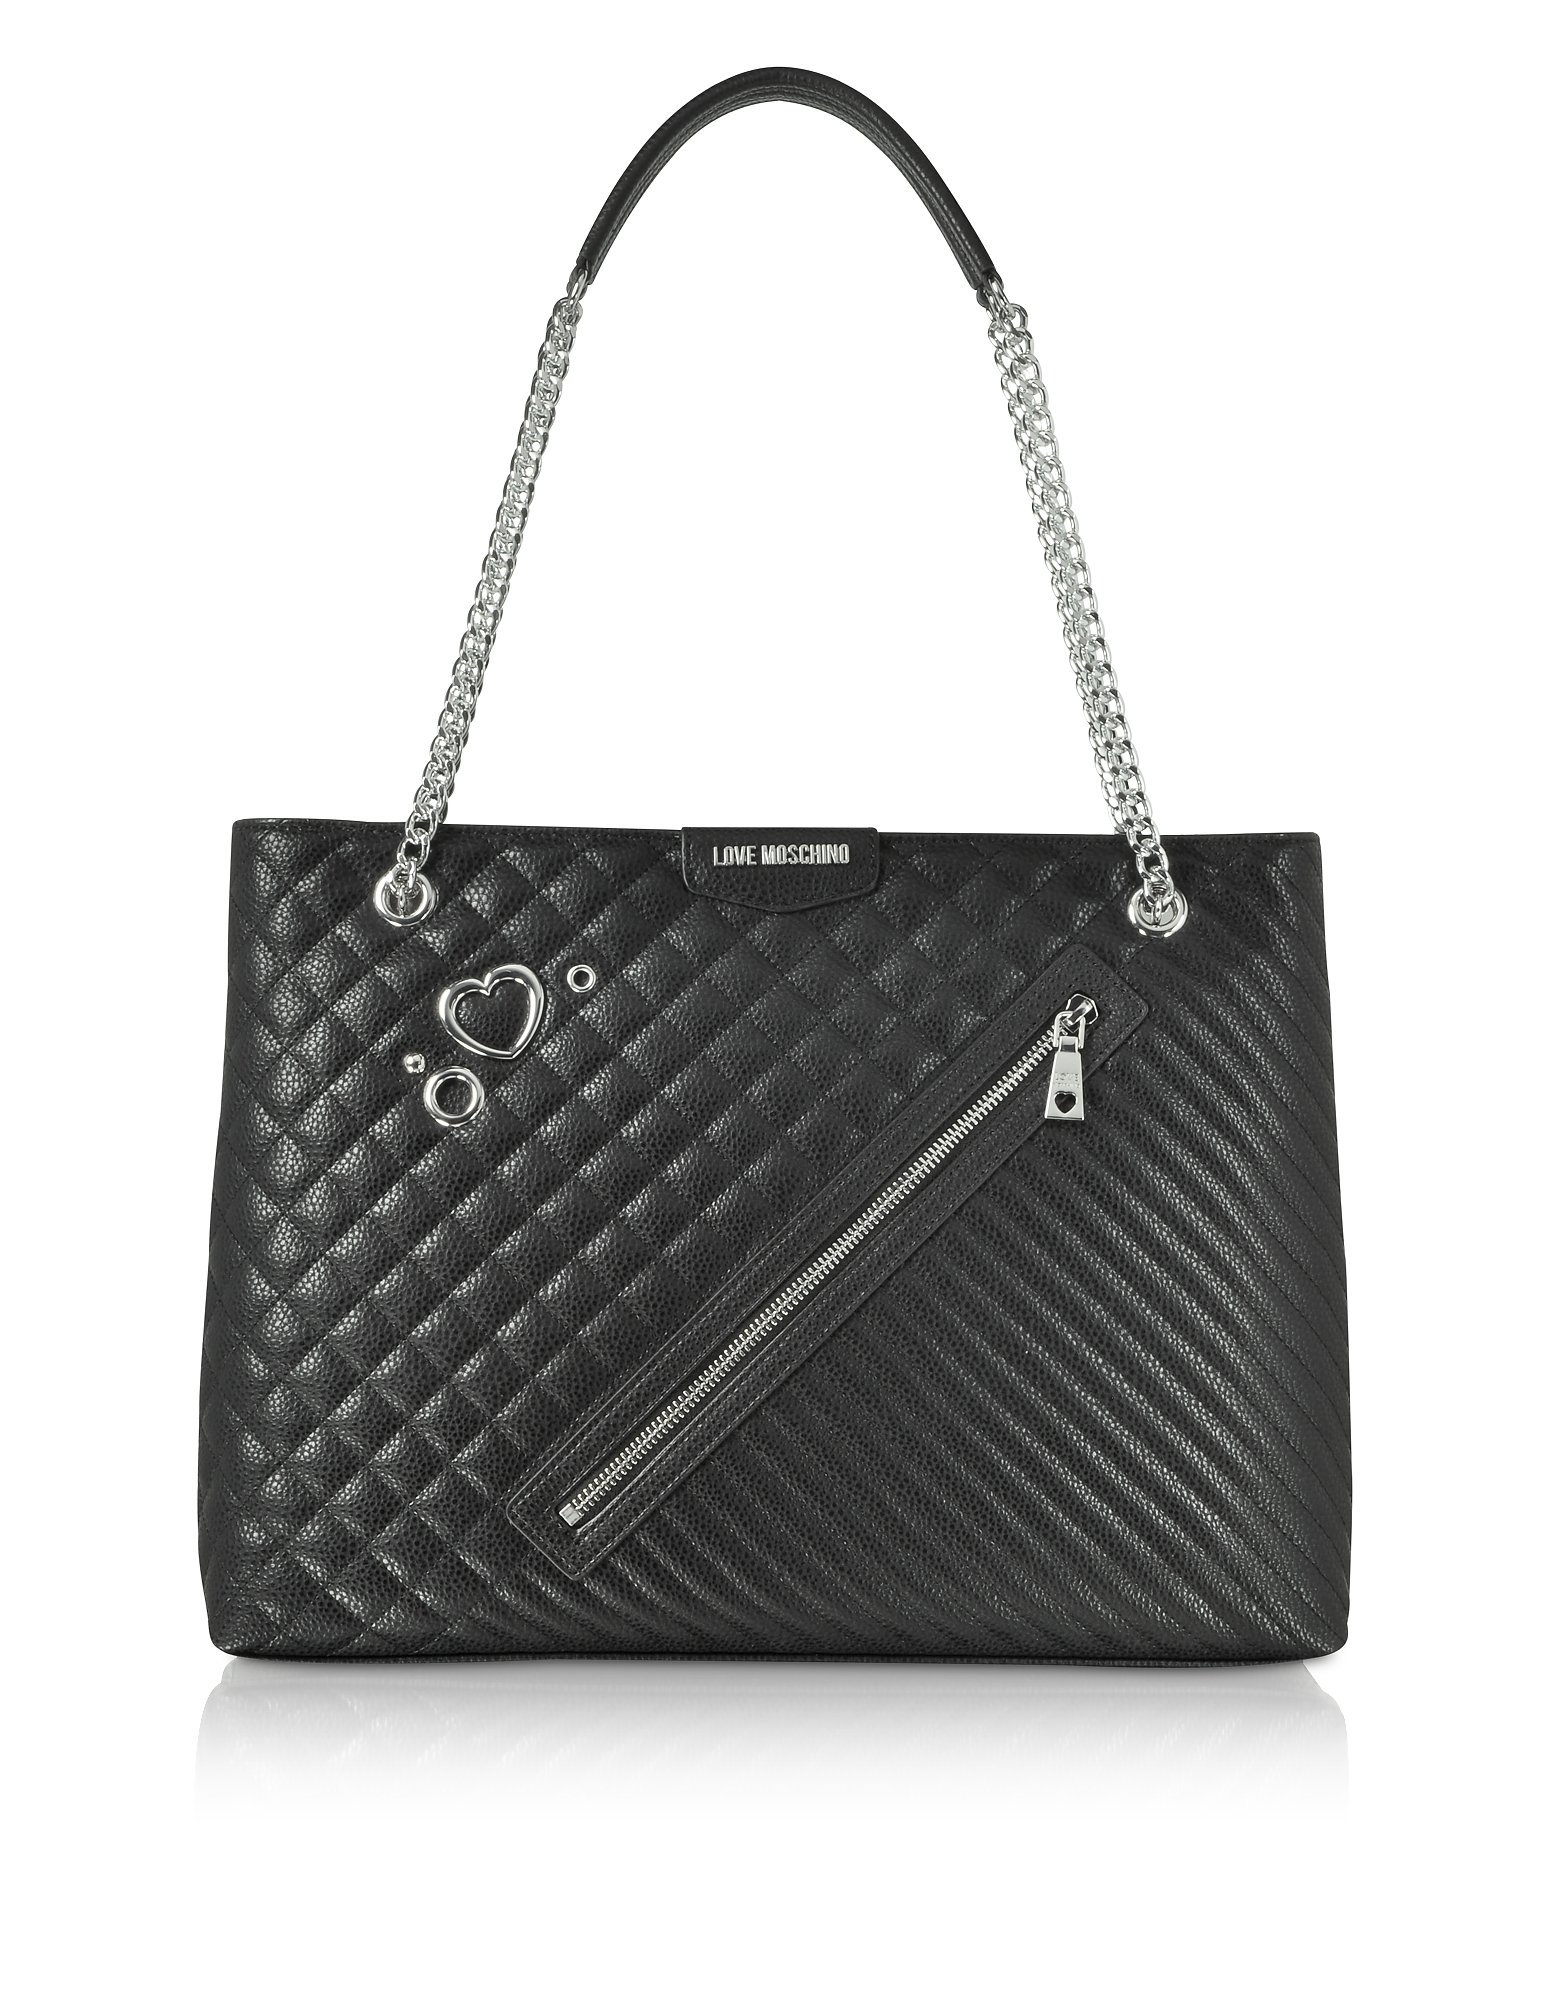 Image of Love Moschino Designer Handbags, Black Quilted Eco Leather Tote Bag